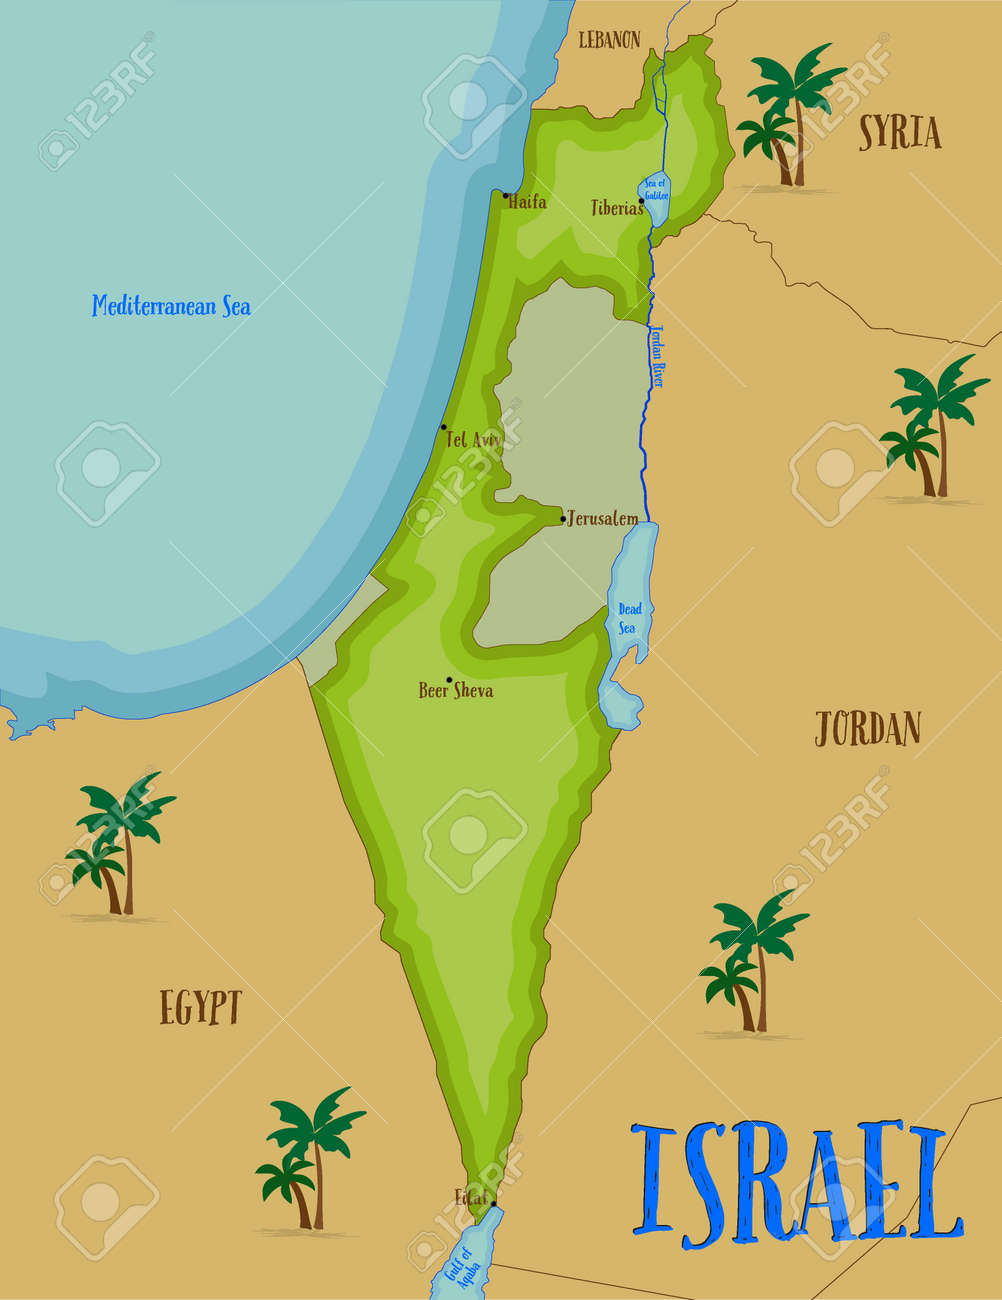 Welcome To Holy Land Map Of Israel In Cartoon Style Vector - Mapa de israel